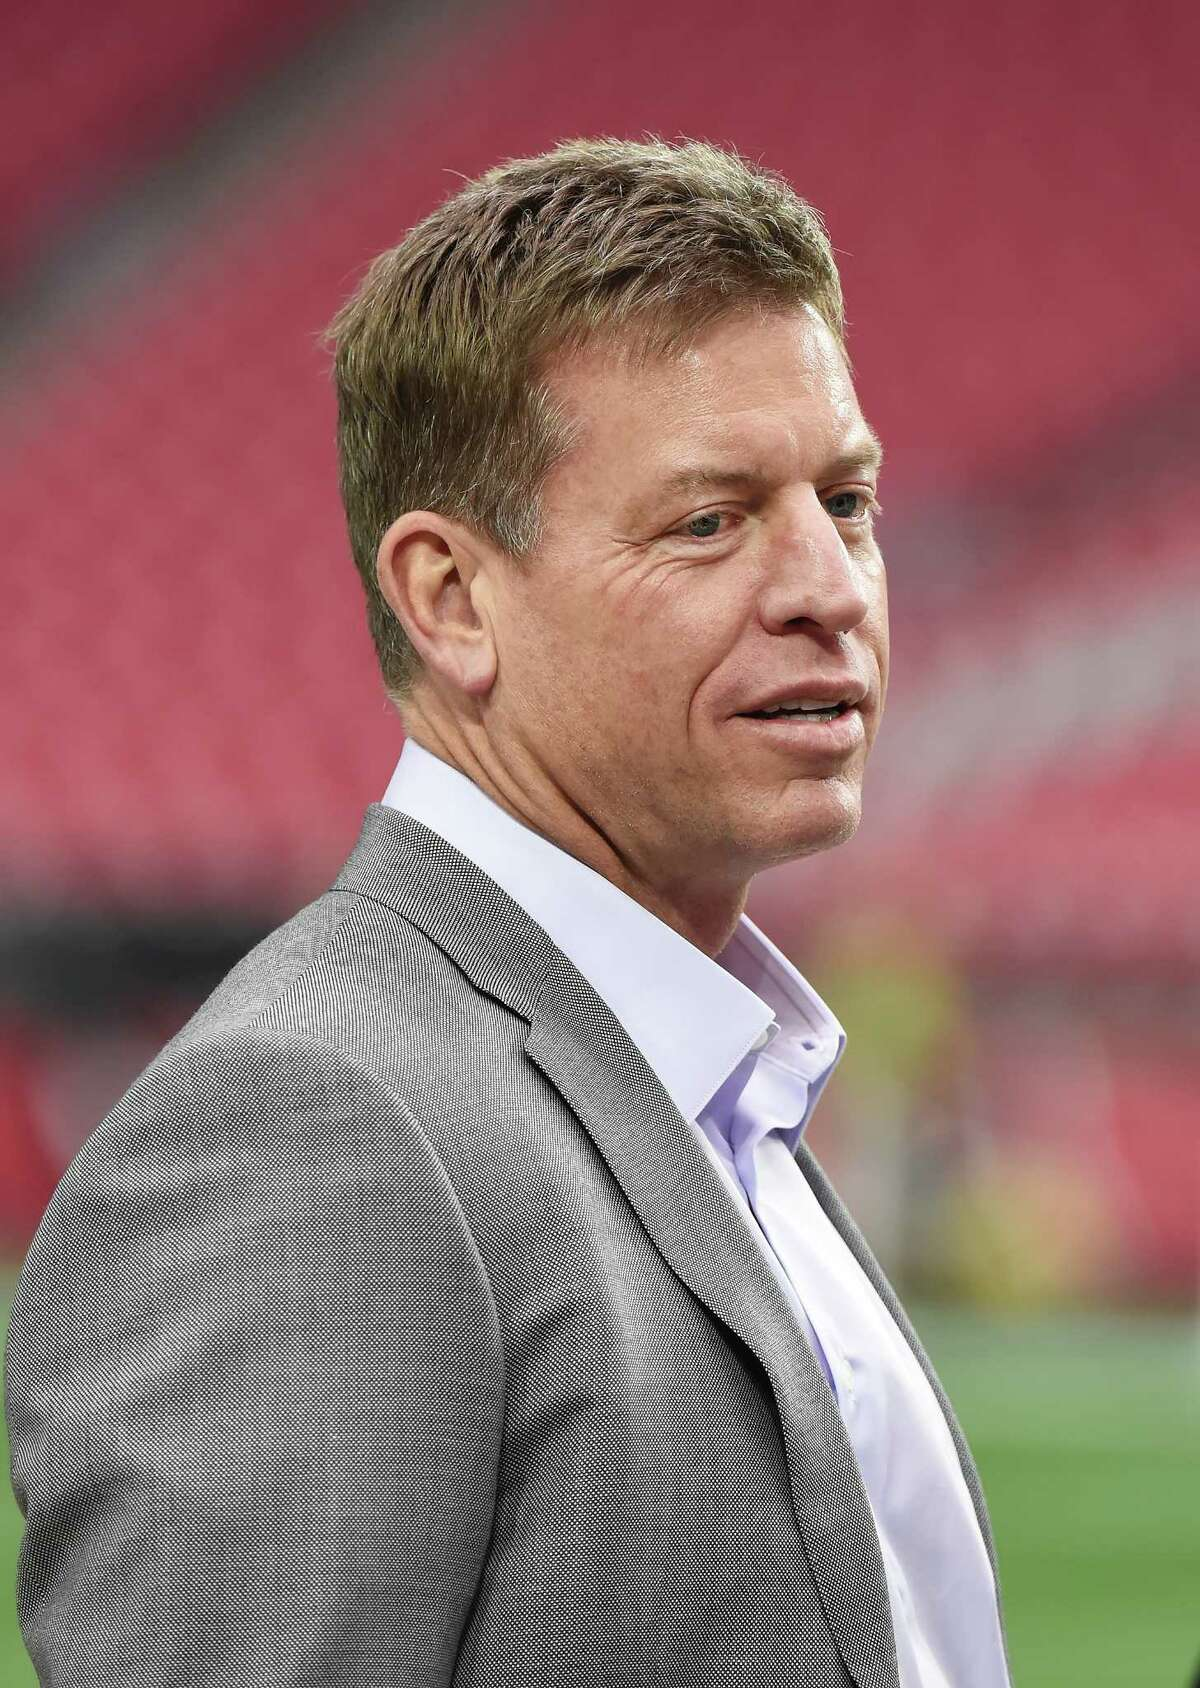 Troy Aikman, former Cowboy Restaurant name: Troy's Location: Set to open at Texas Live! in Arlington